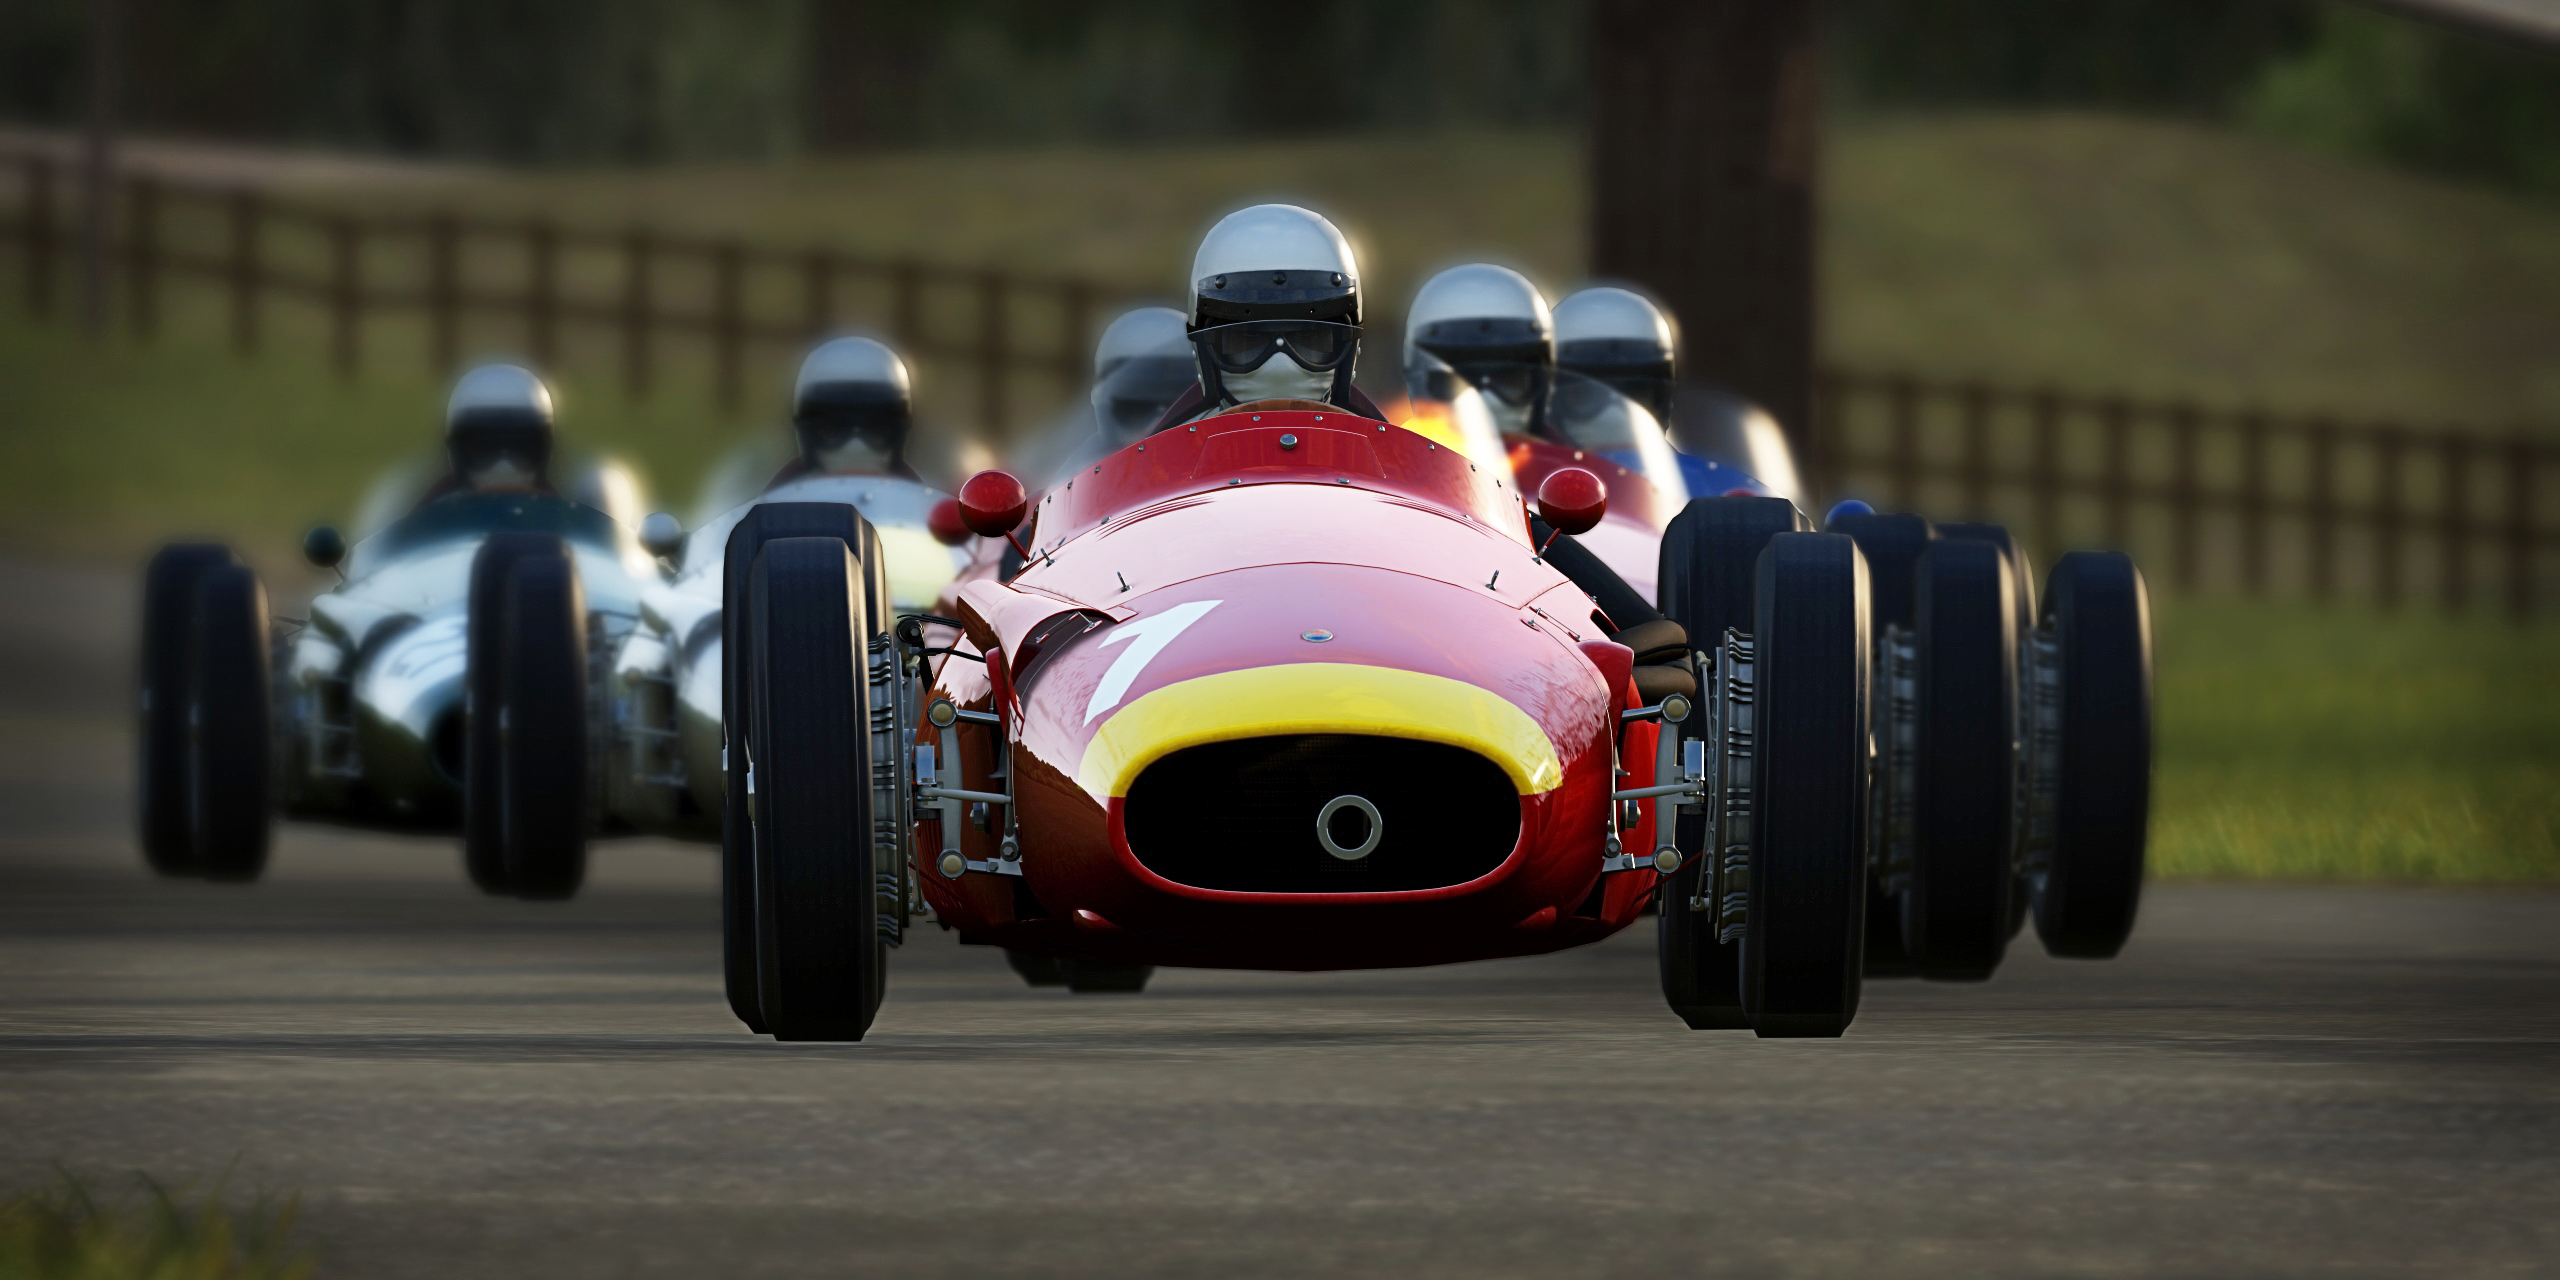 Donington Park 1938 Assetto Corsa Mod – More Pre-War Cars Please!